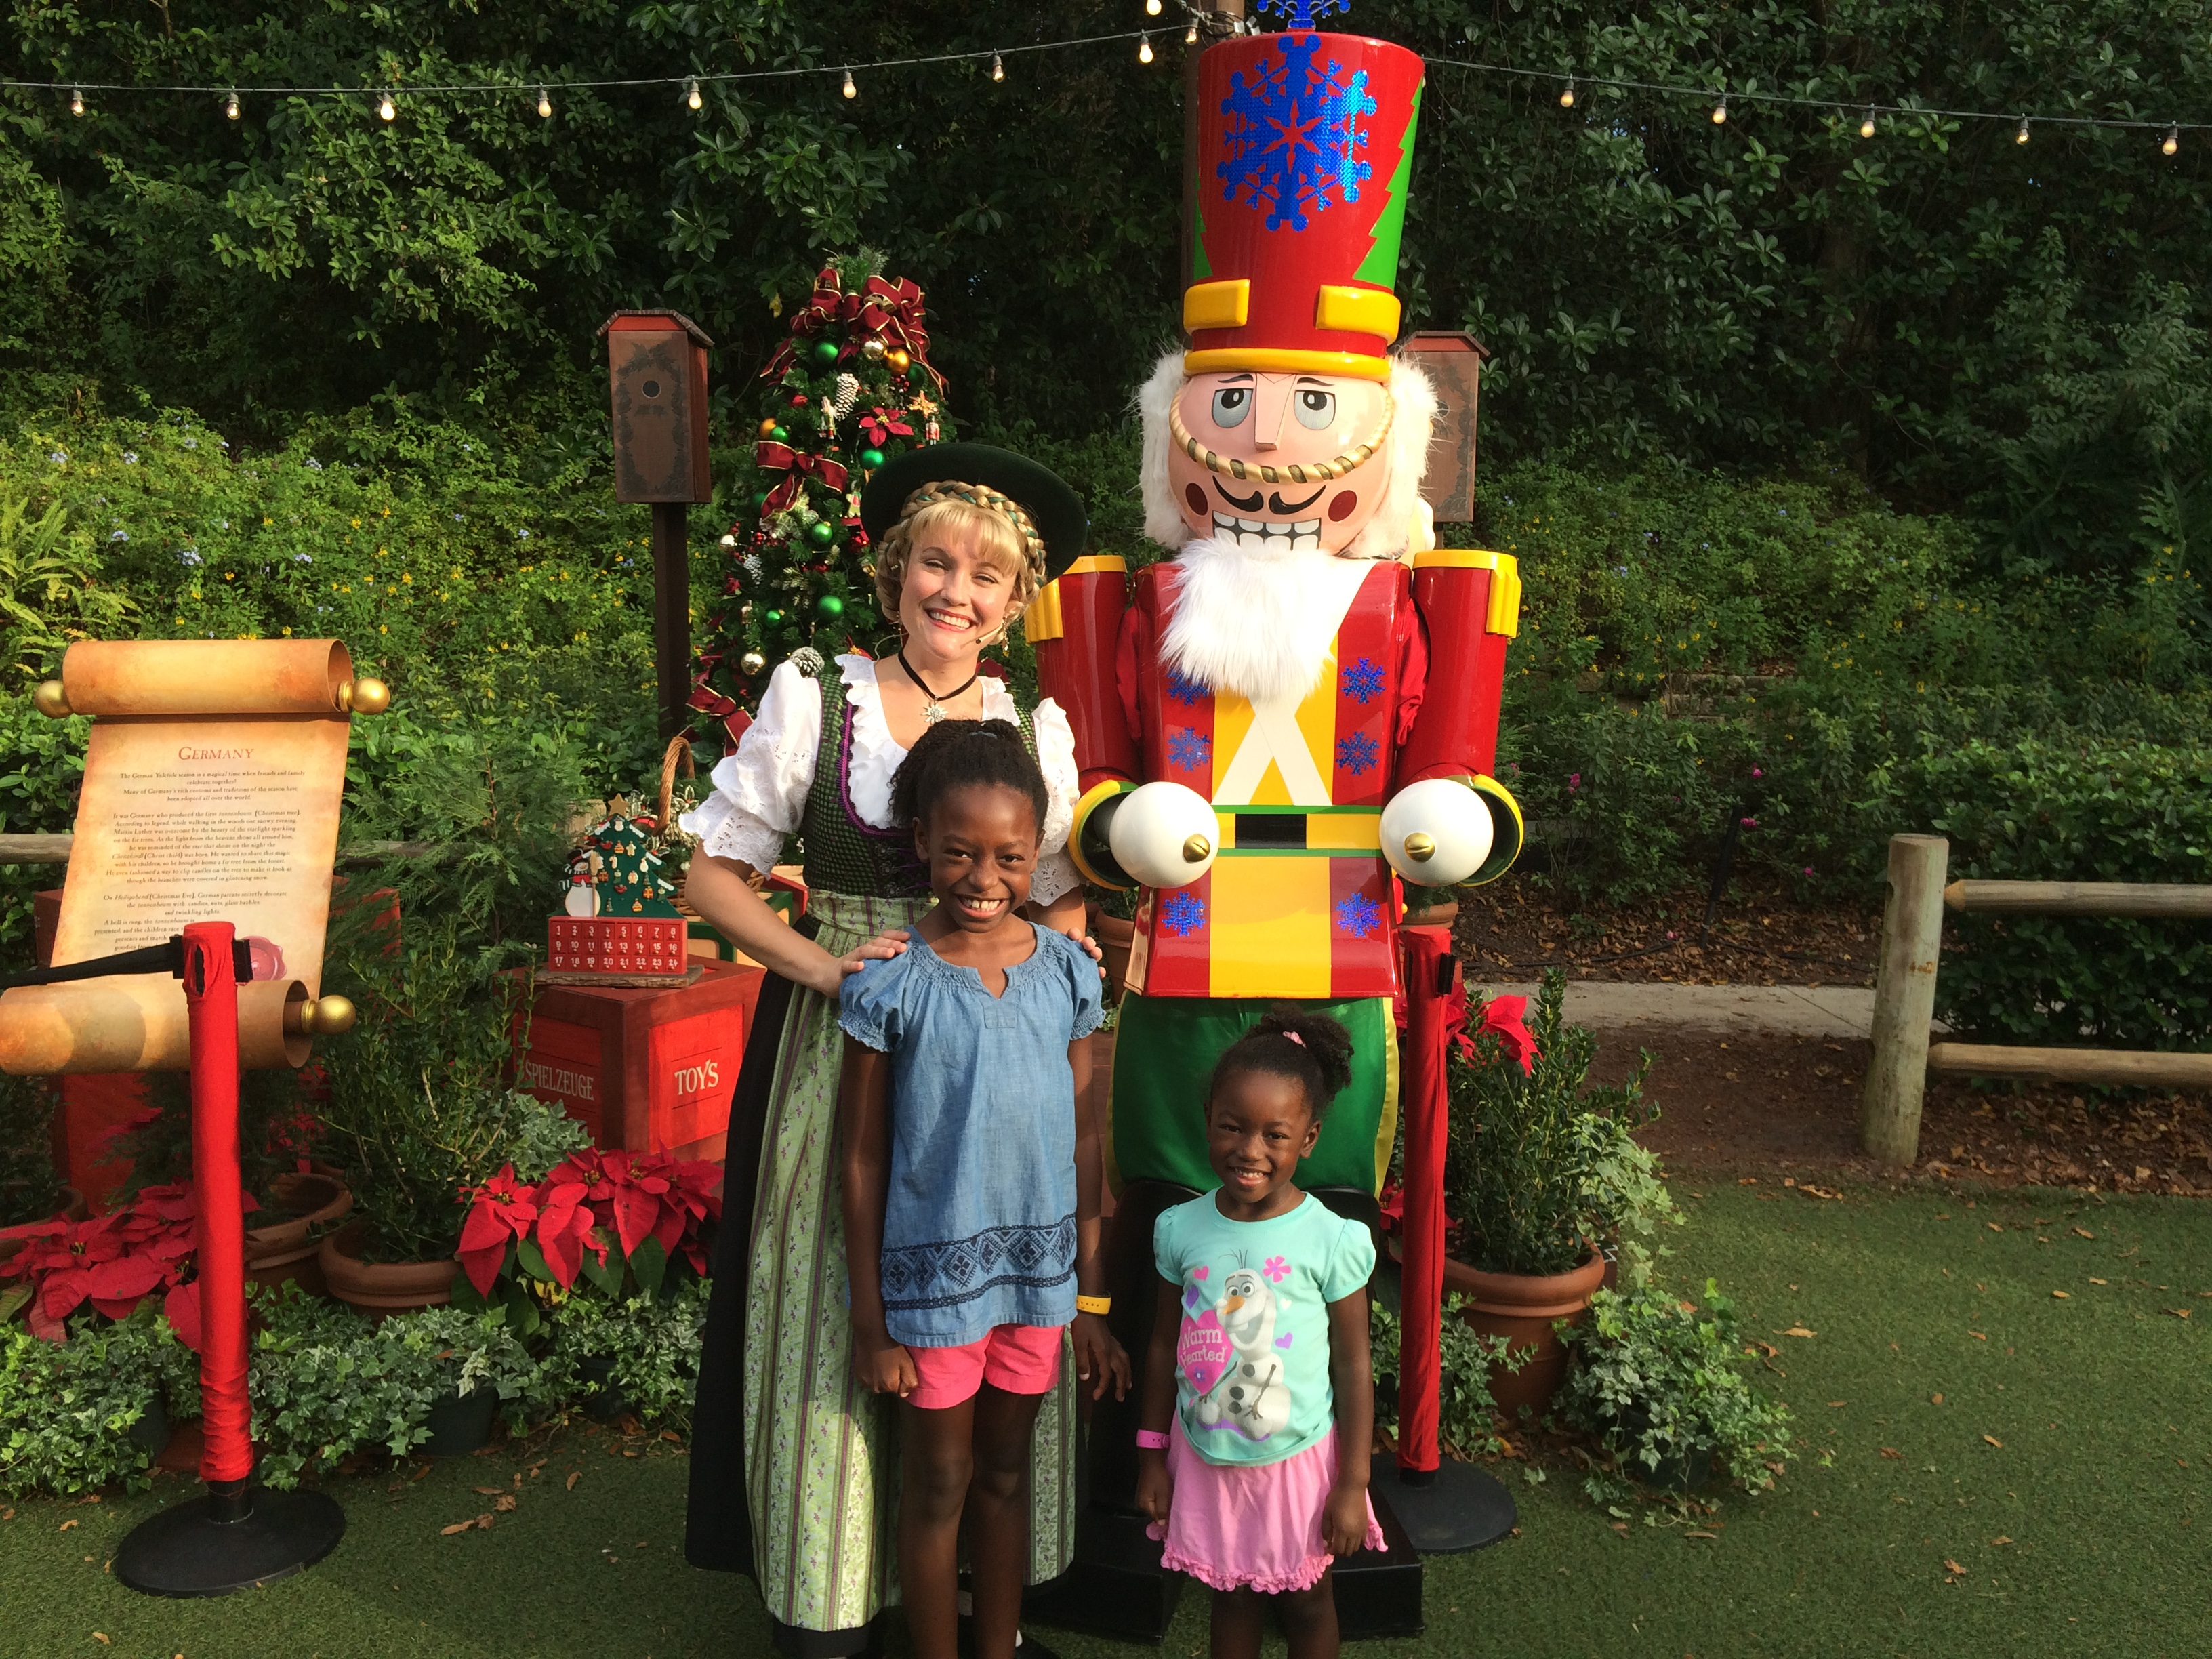 EPCOT's Holidays Around the World offers cultural immersion moments in each of the different international regions of the World Showcase. Here my daughters learned about Christmas customs in Germany